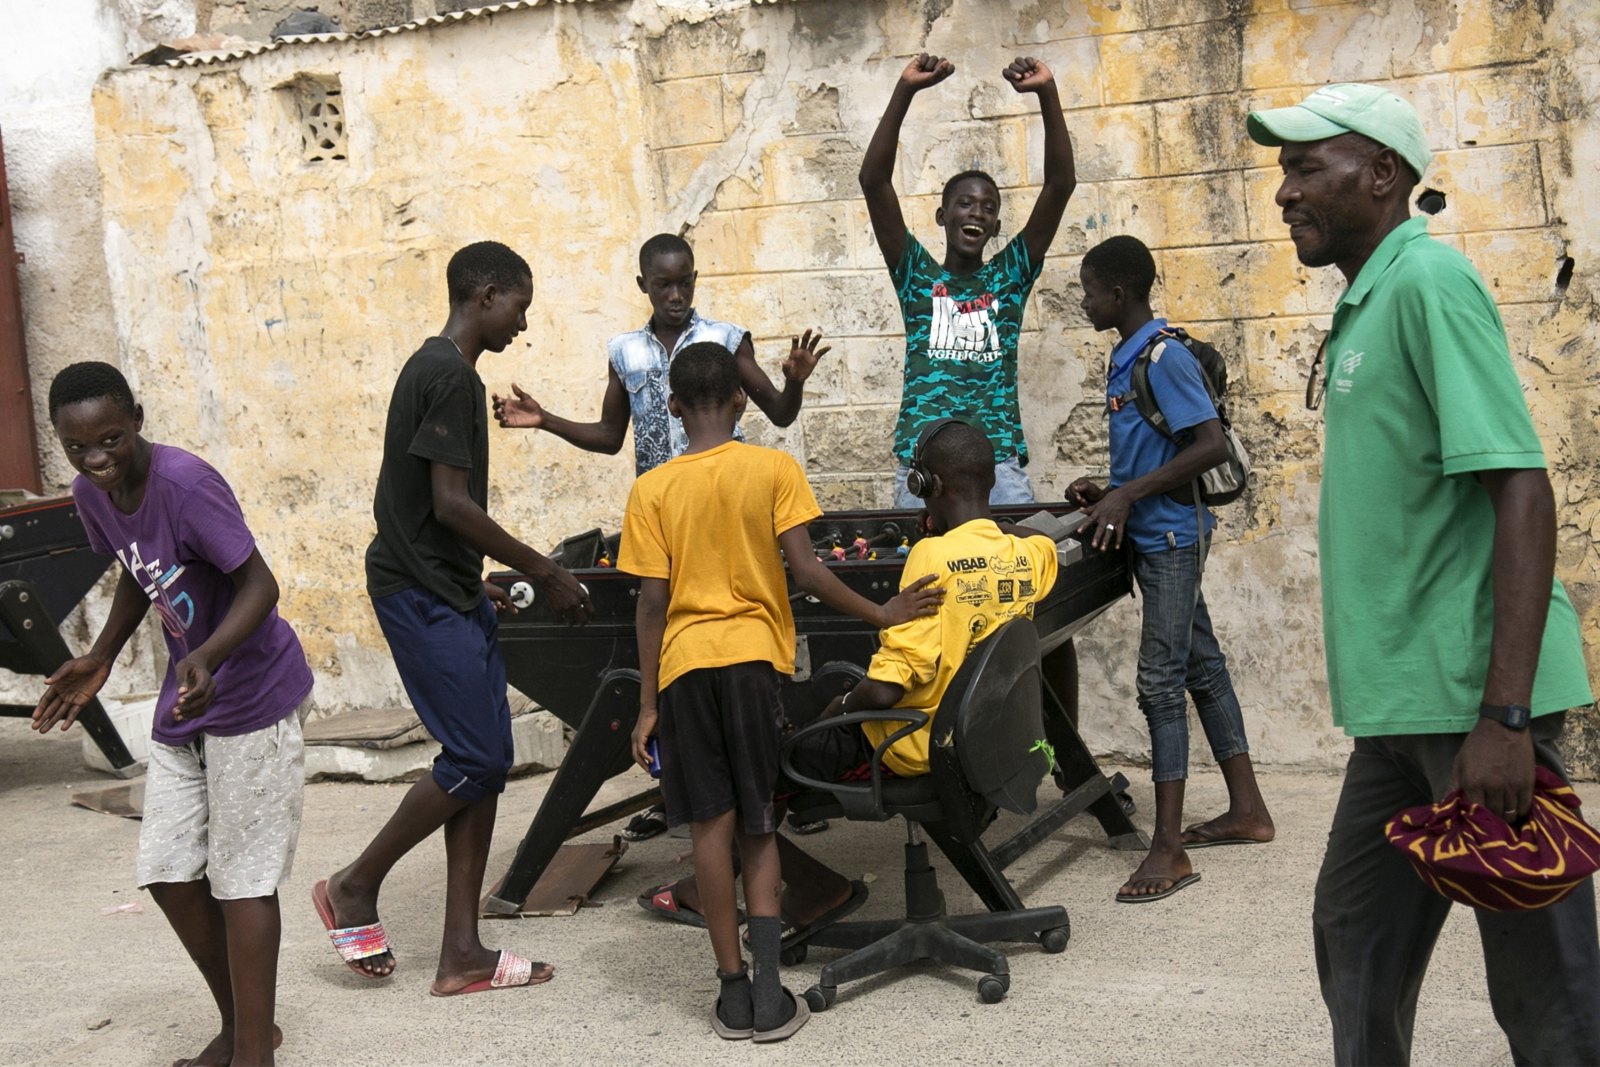 A group of young men celebrate after a game of foosball in St. Louis, Senegal.